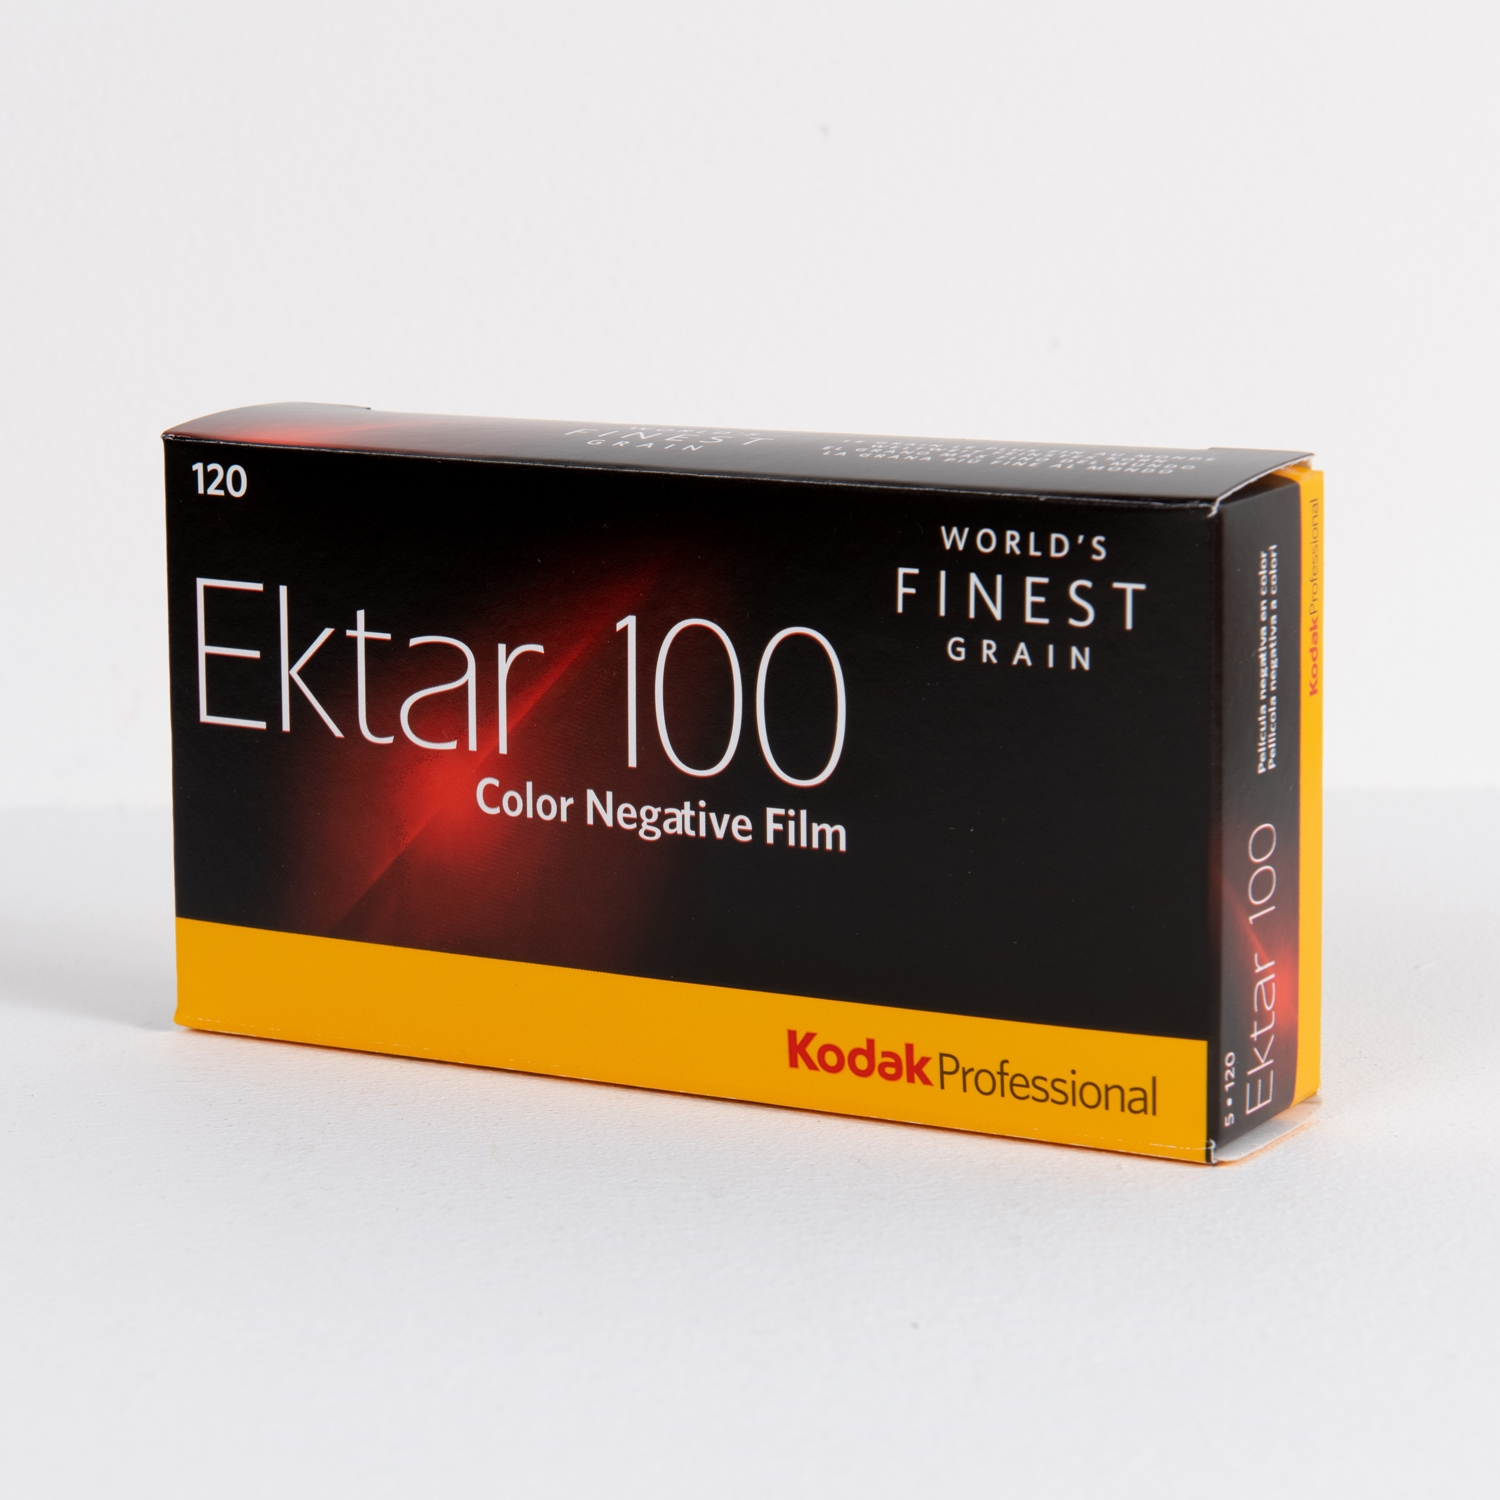 Kodak  Ektar, 100 Color Negative Film (120 - 5 Pack)